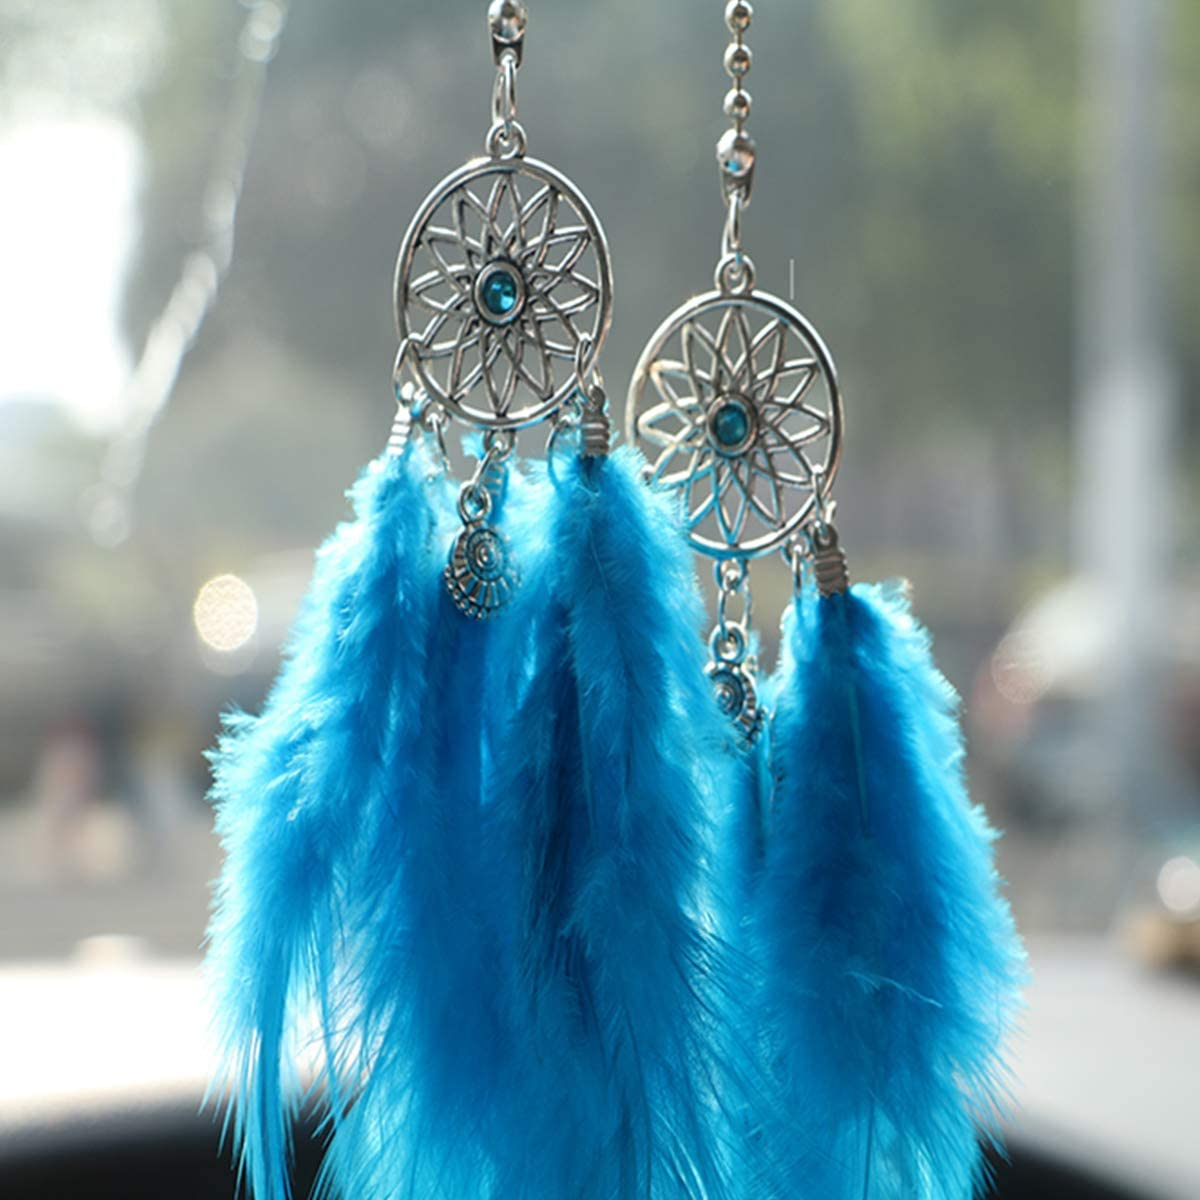 Car Rear View Mirror Hanging Pendant Feather Dream Catcher Crystal Charm Bling Car Deco Accessories for Women Red